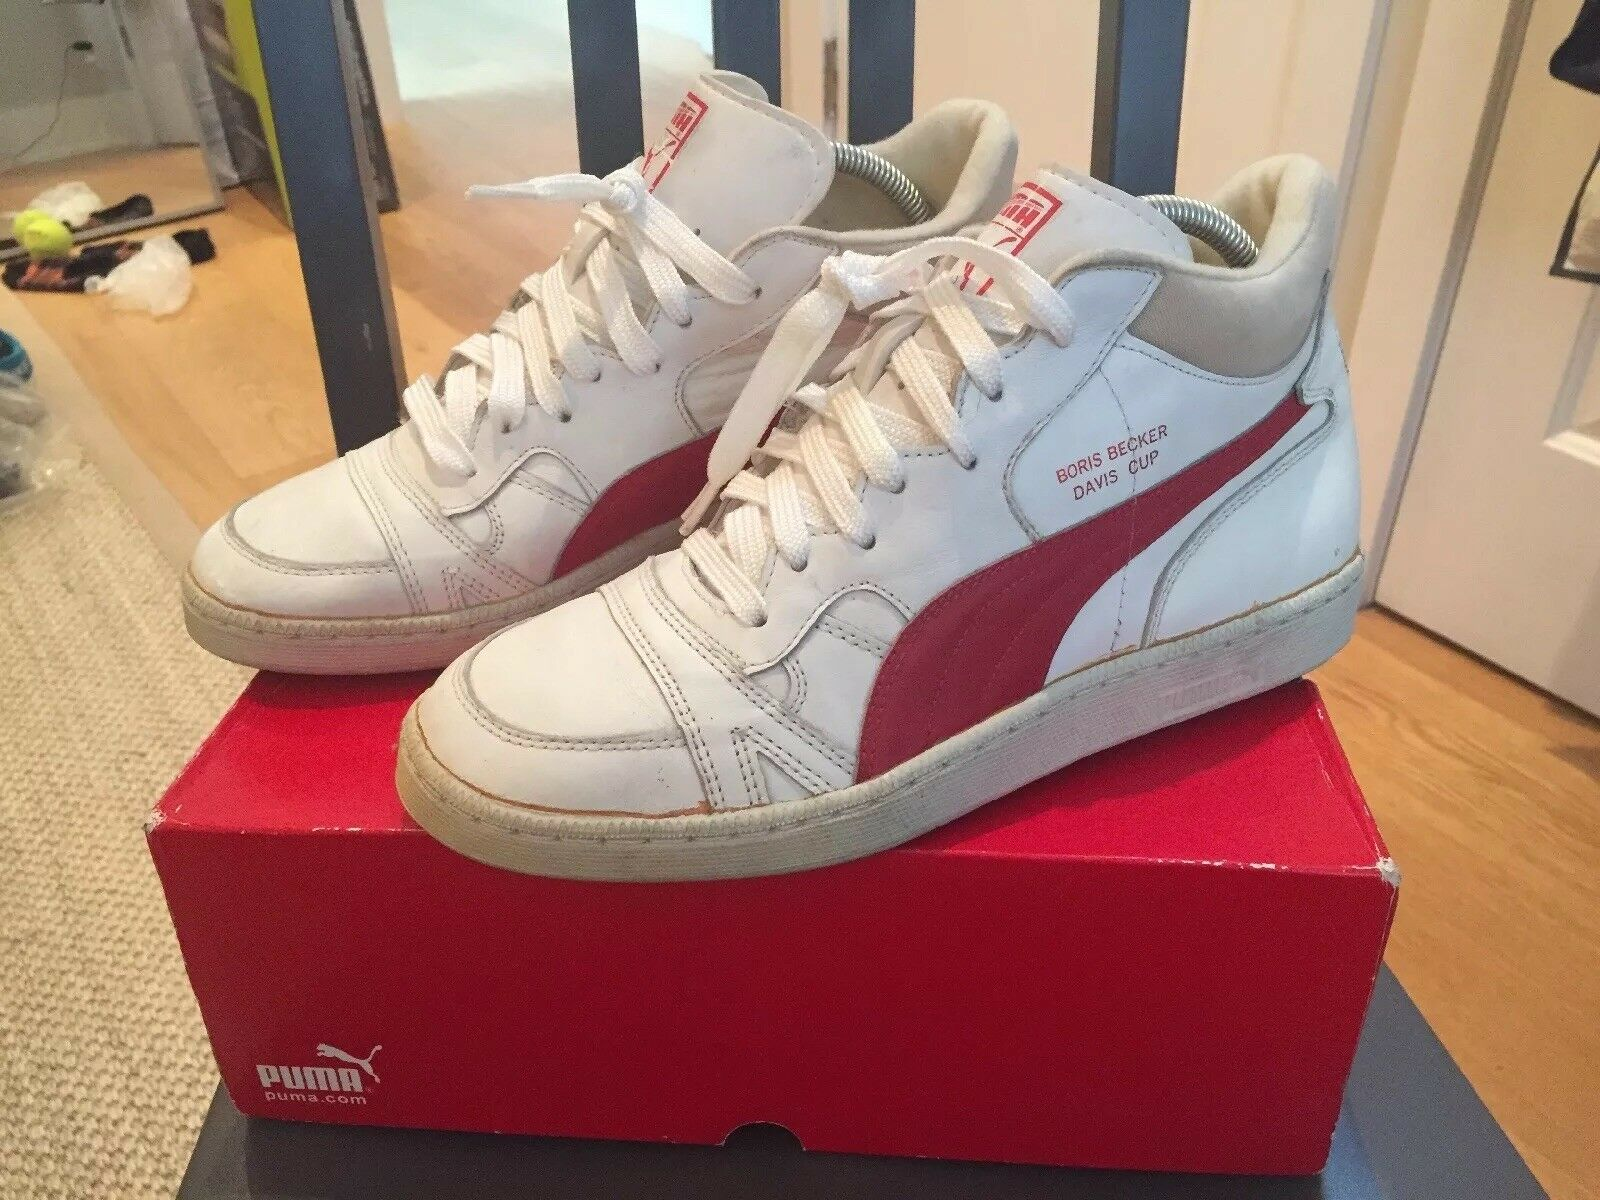 Puma West Germany Vintage VTG 1986 Boris Becker Tennis shoes